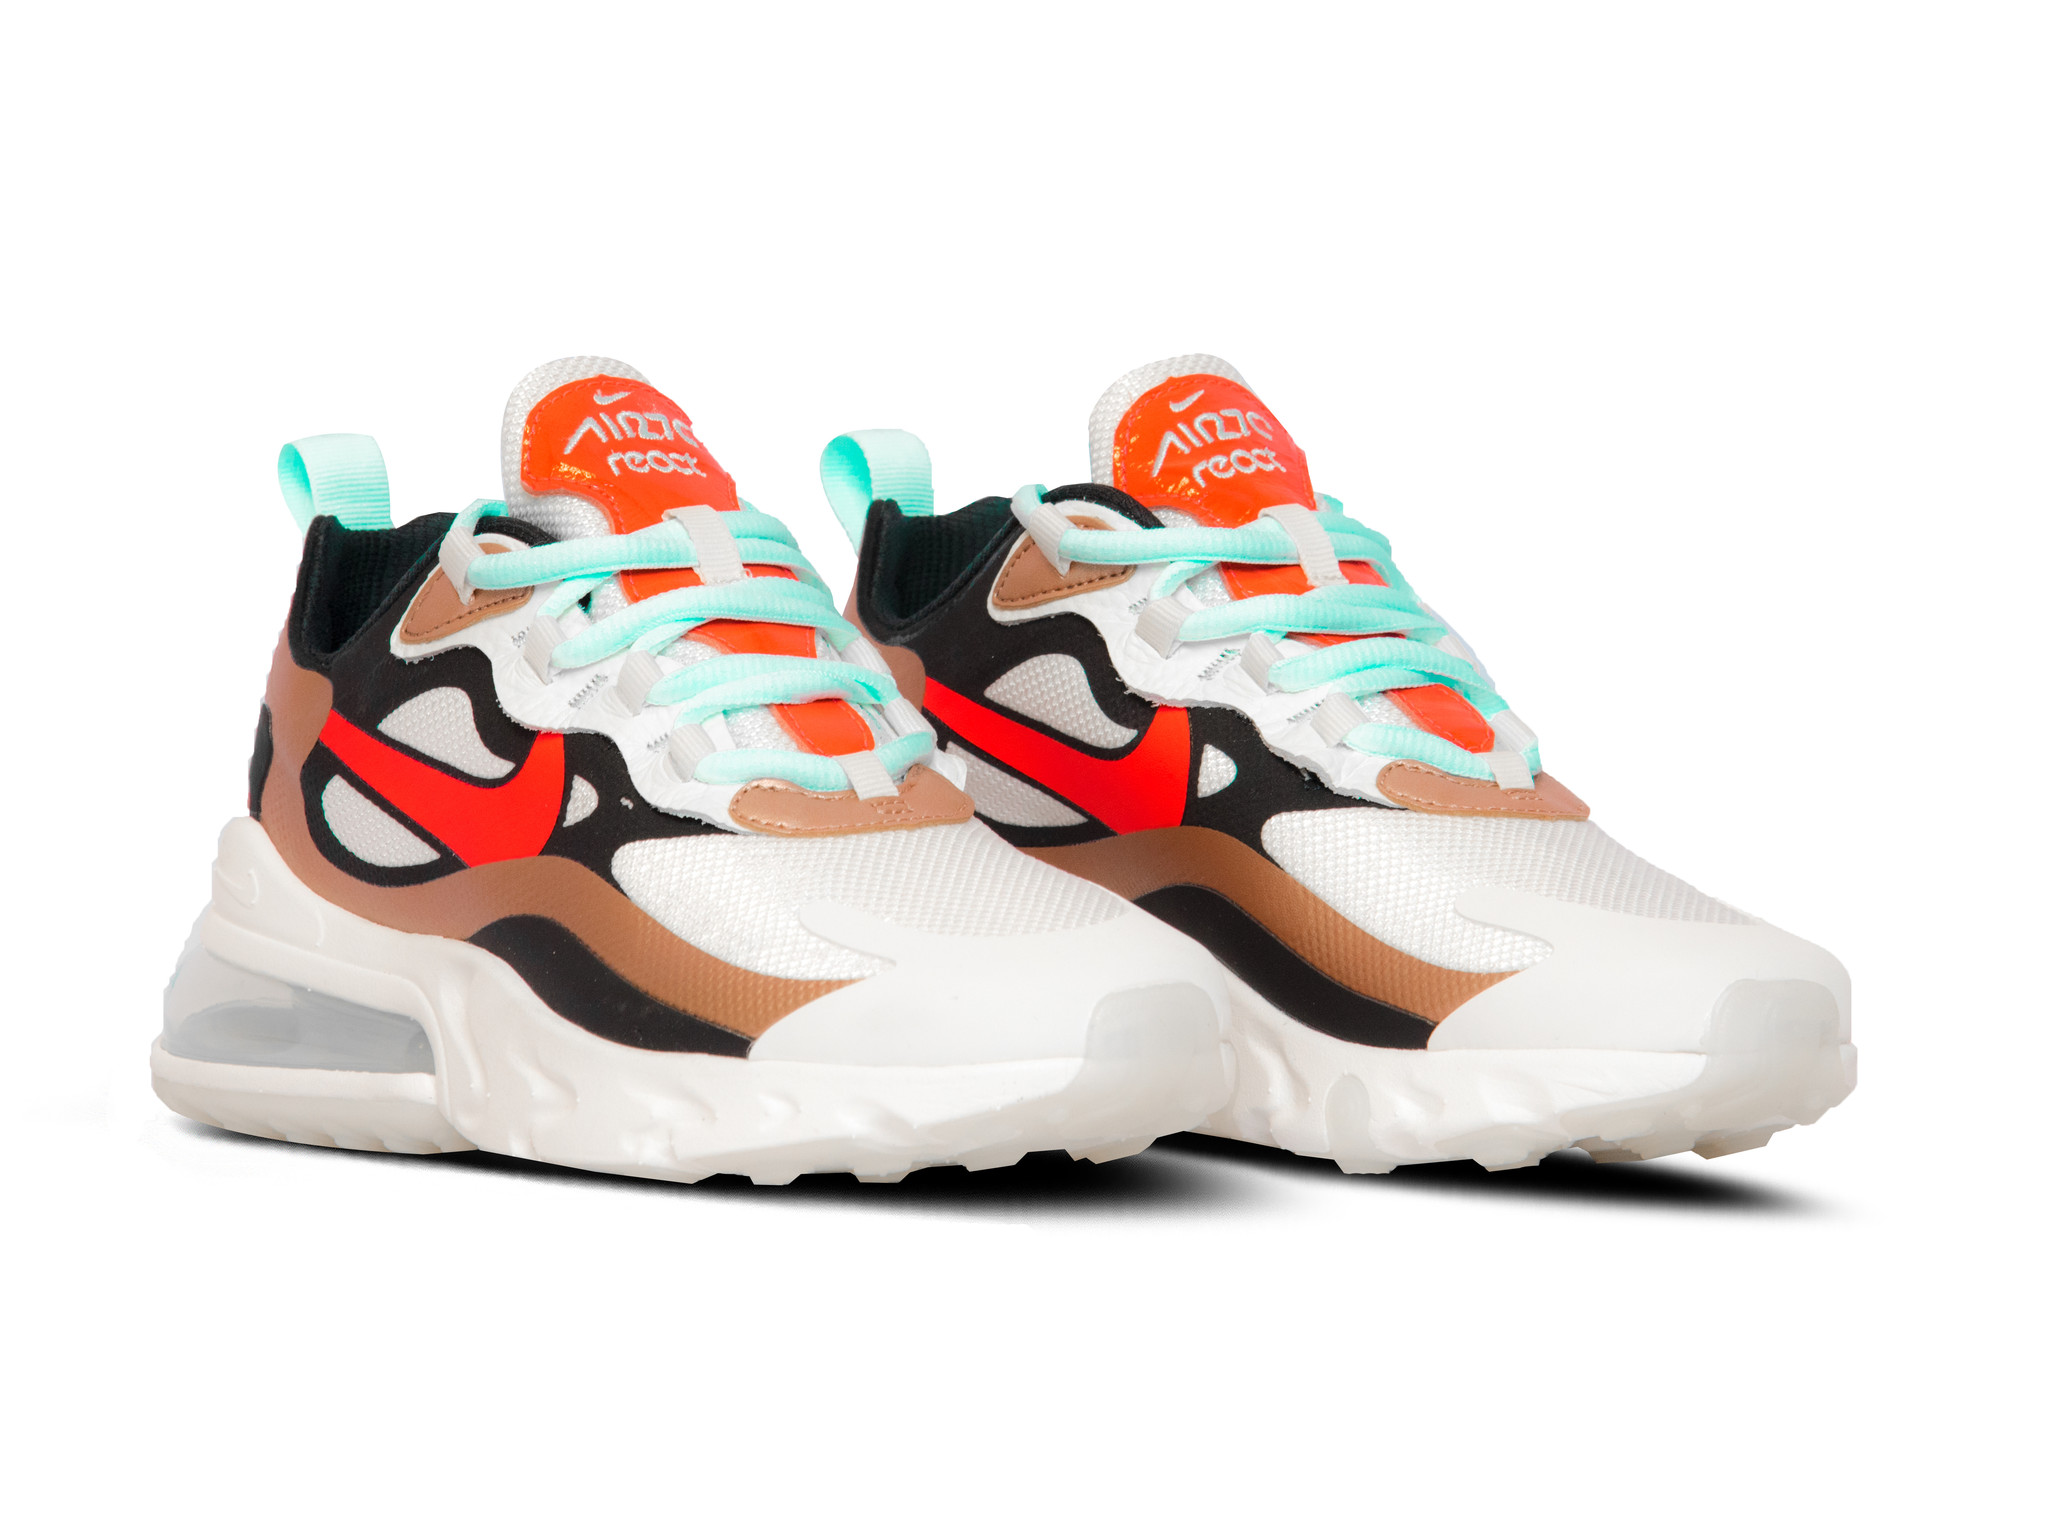 Air Max 270 React Sail Black Mtlc Red Bronze Pure Platinum